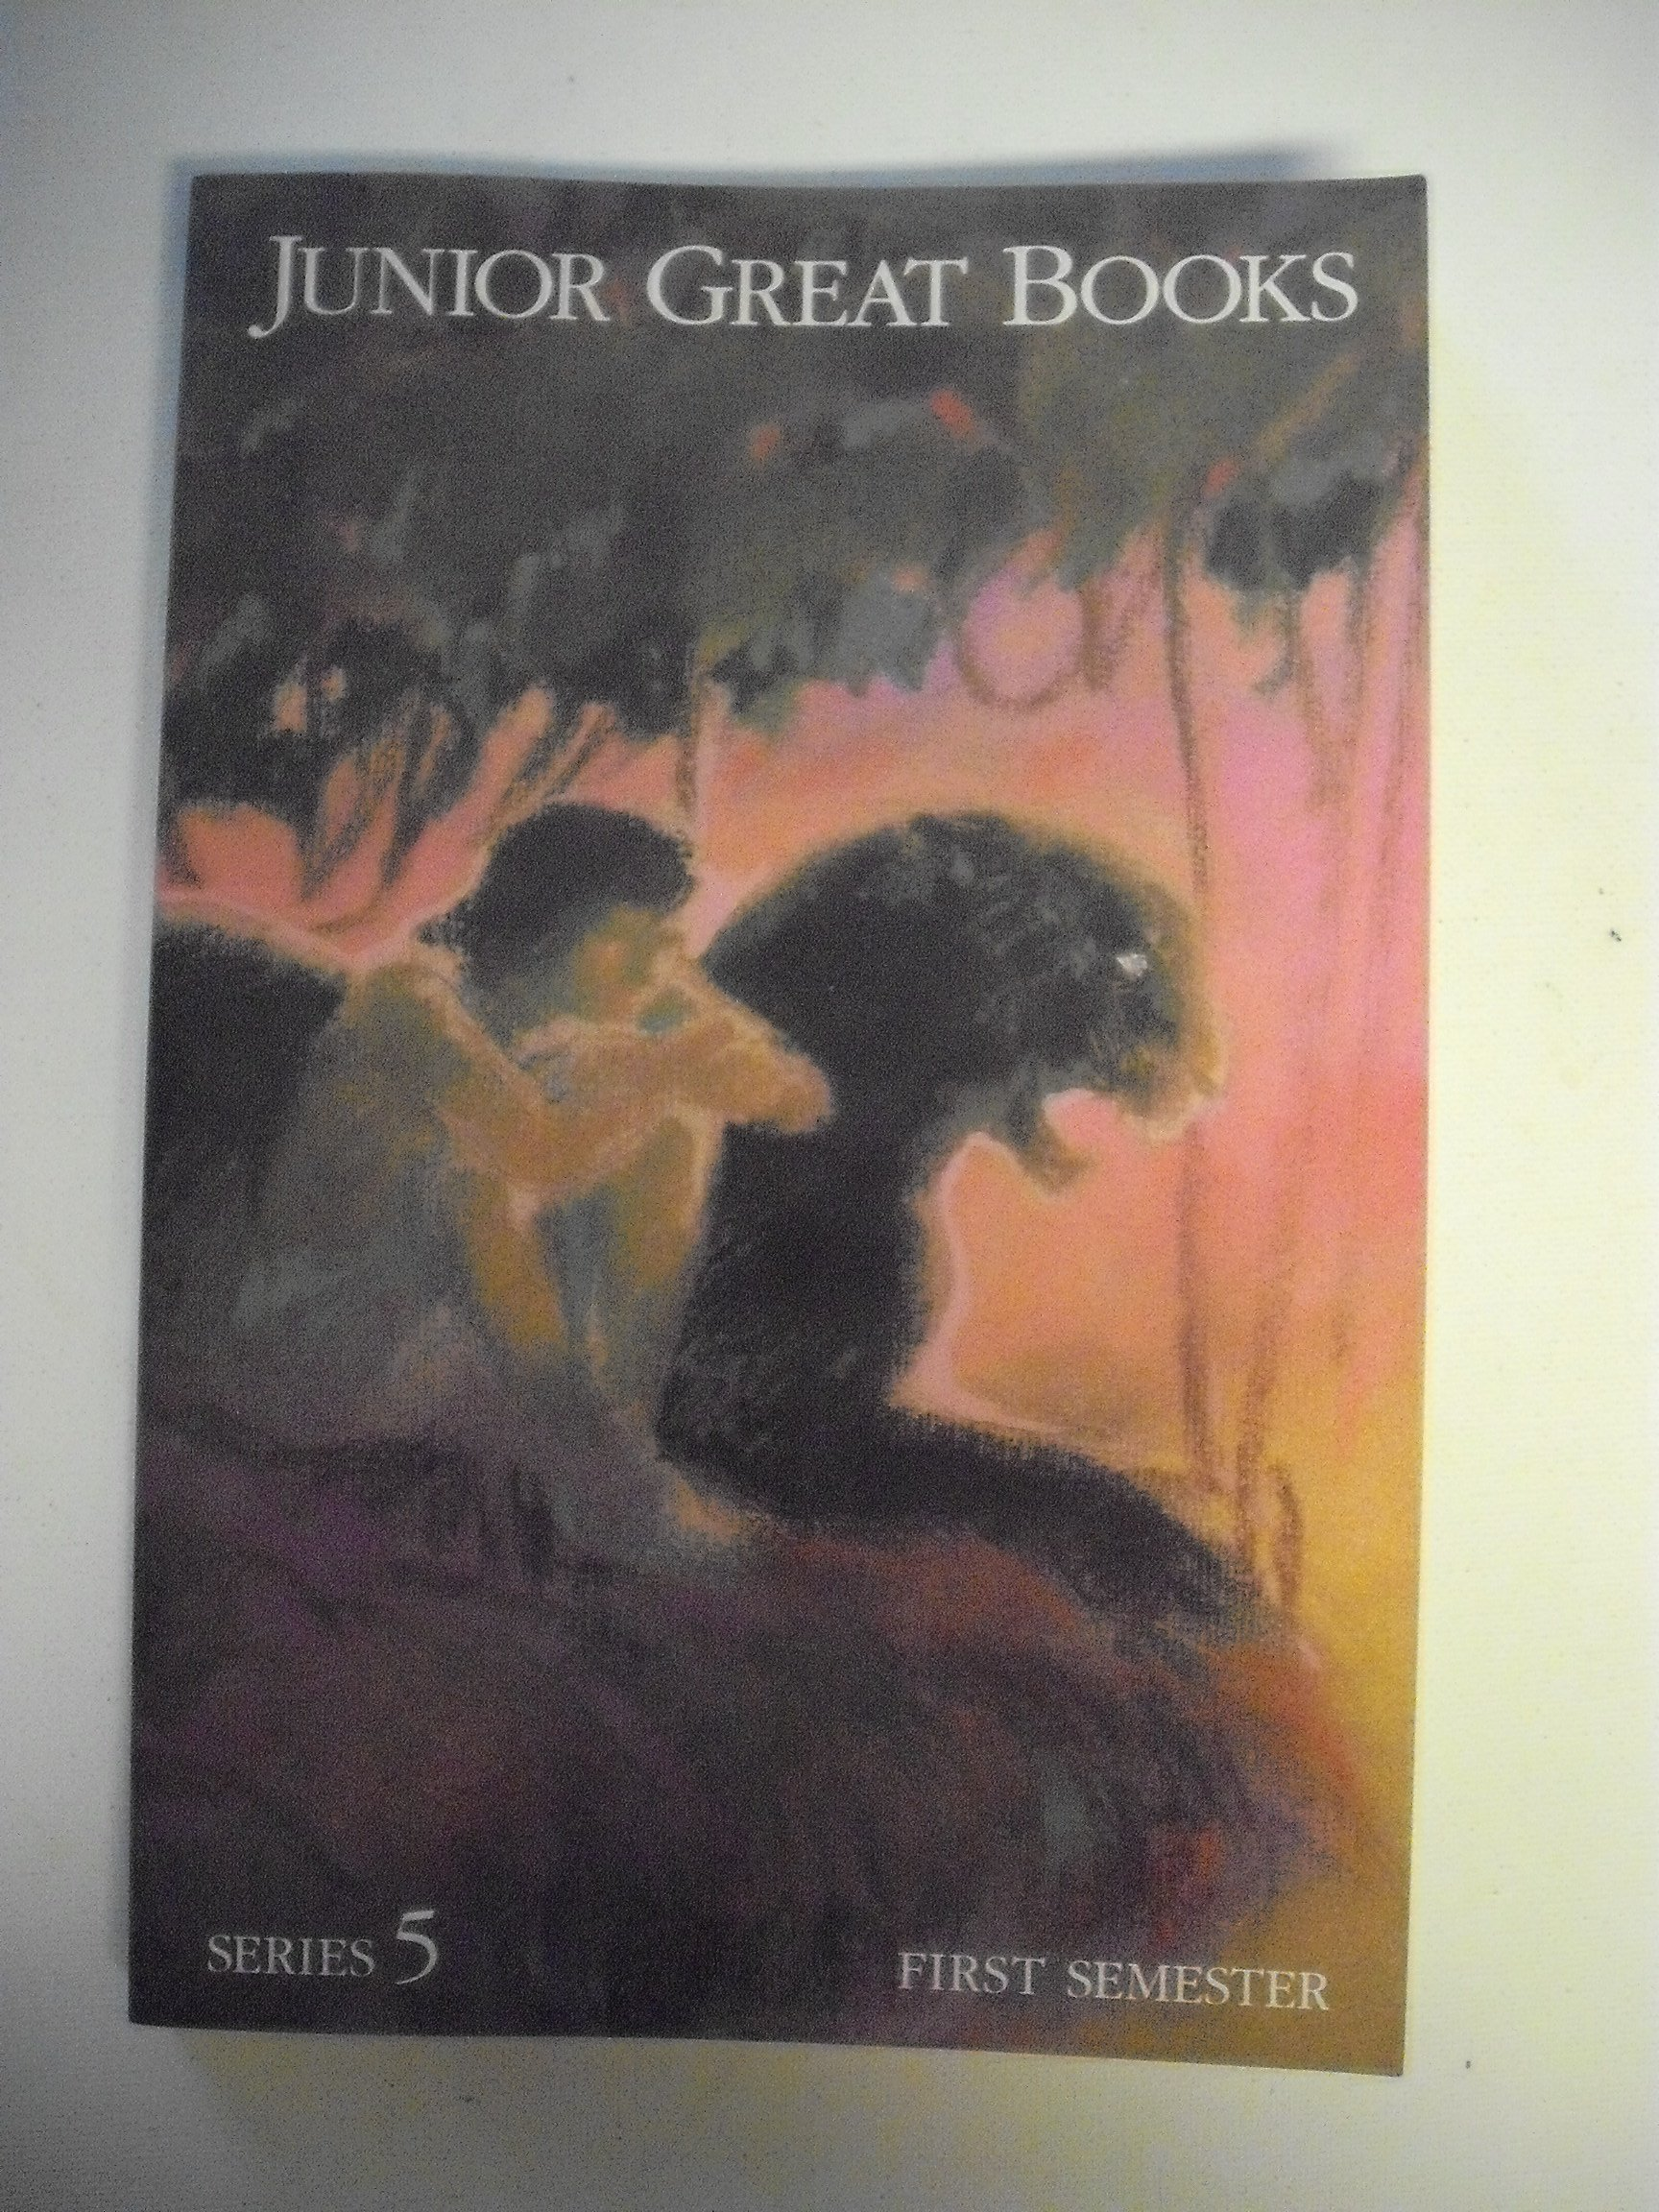 Junior Great Books: Series 5, First Semester: 9781880323069: Amazon.com:  Books